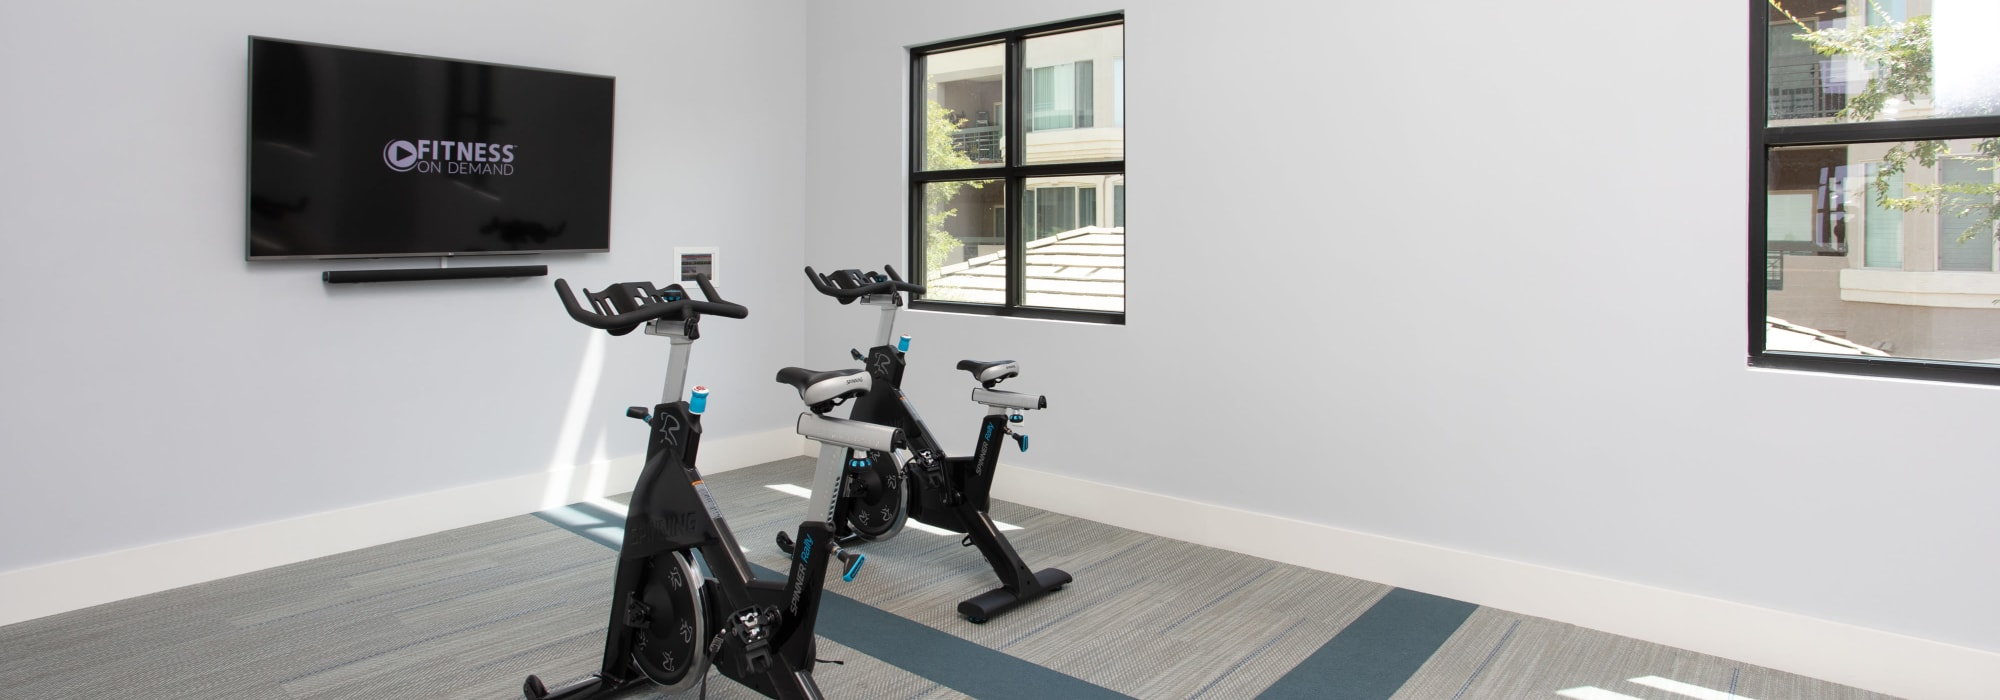 Fitness center at Lakeside Drive Apartments in Tempe, Arizona